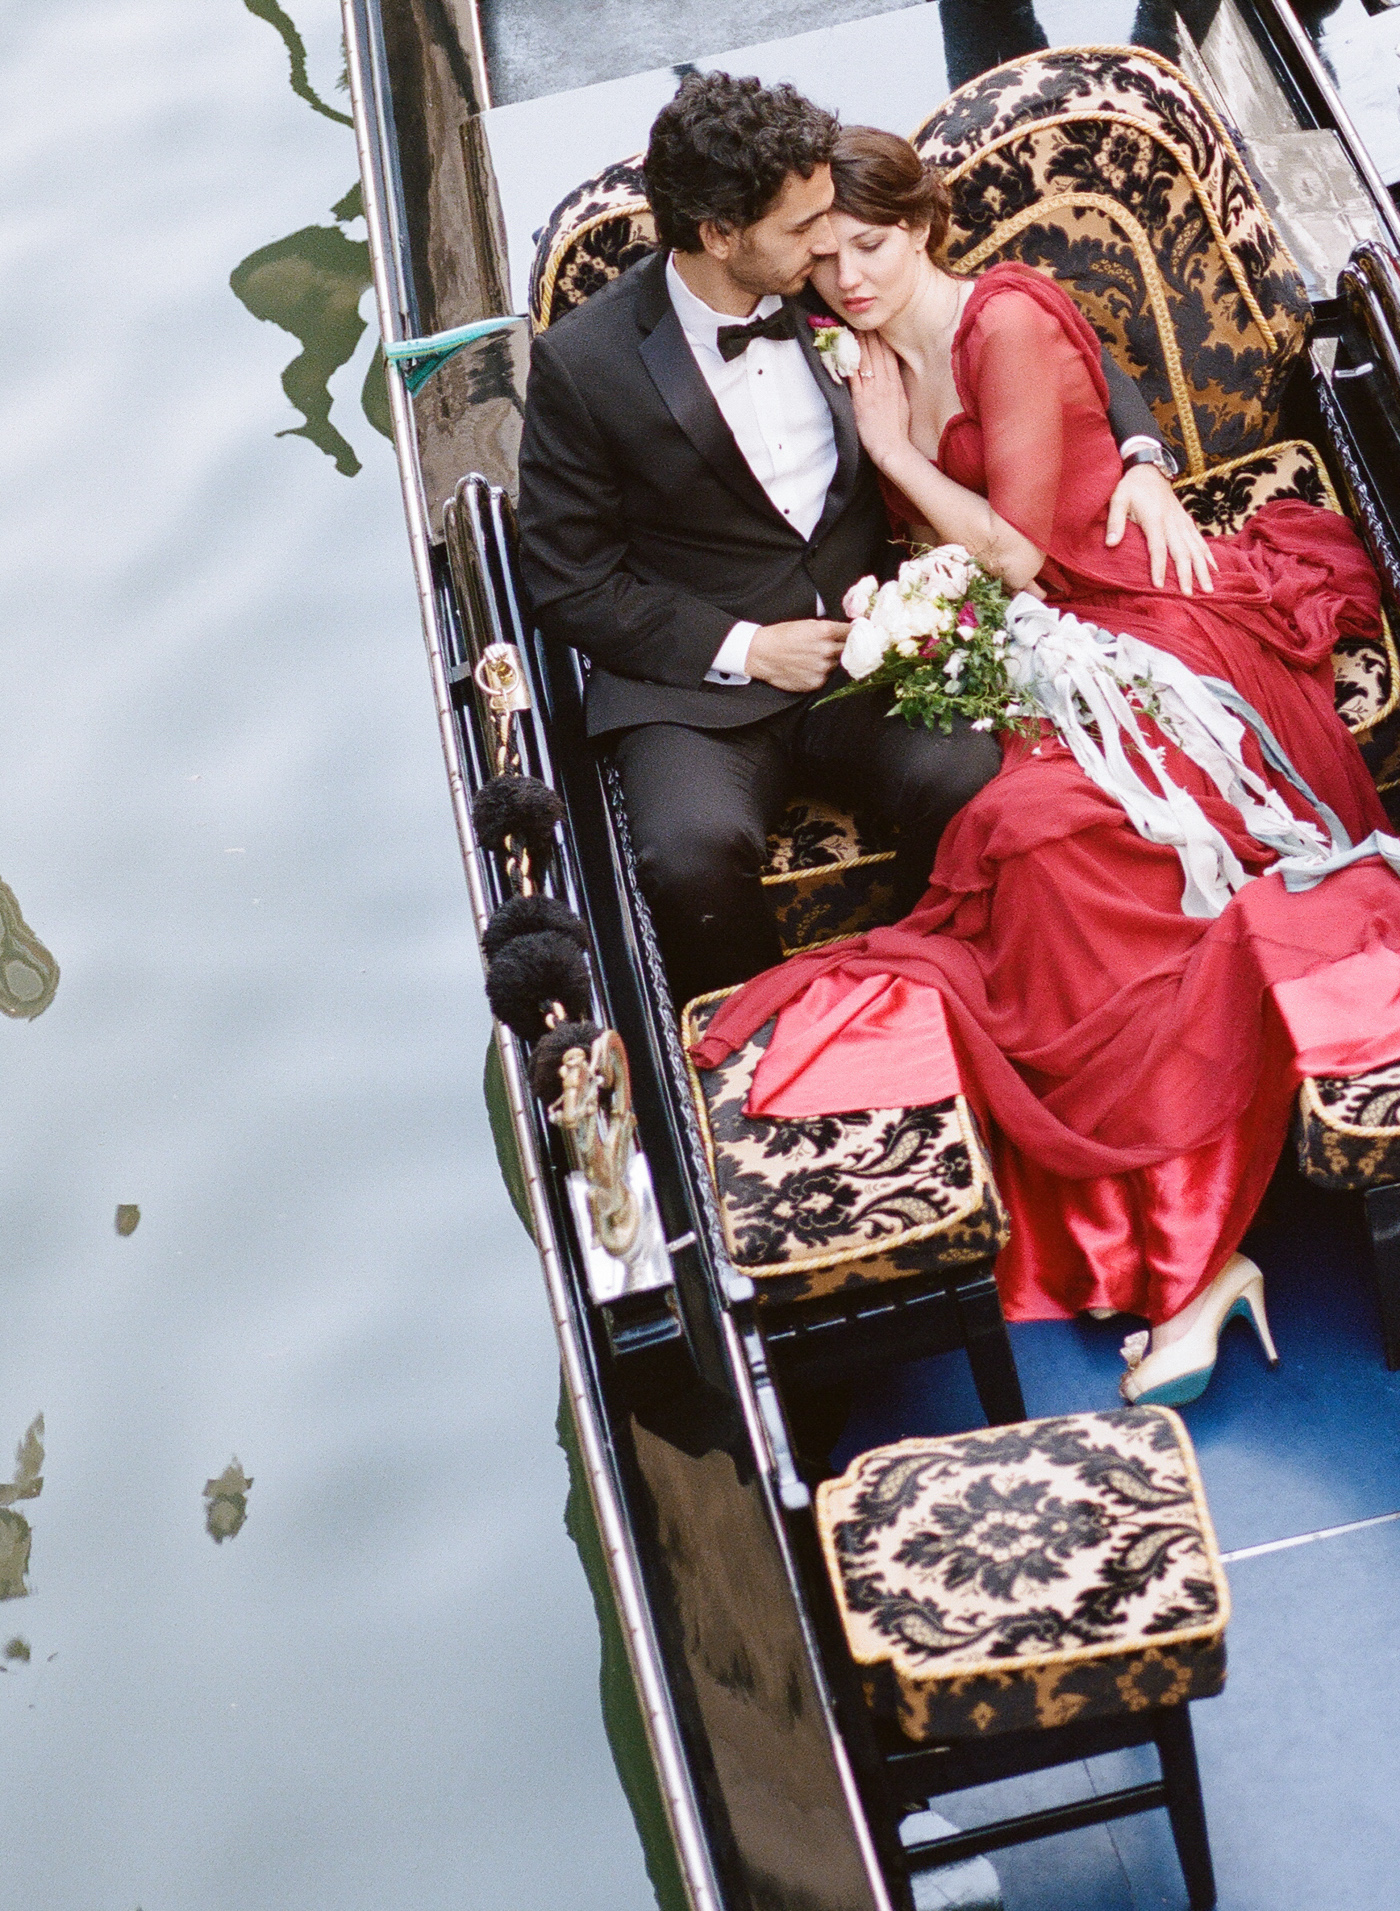 Venice Italy Wedding photographer Koby Brown